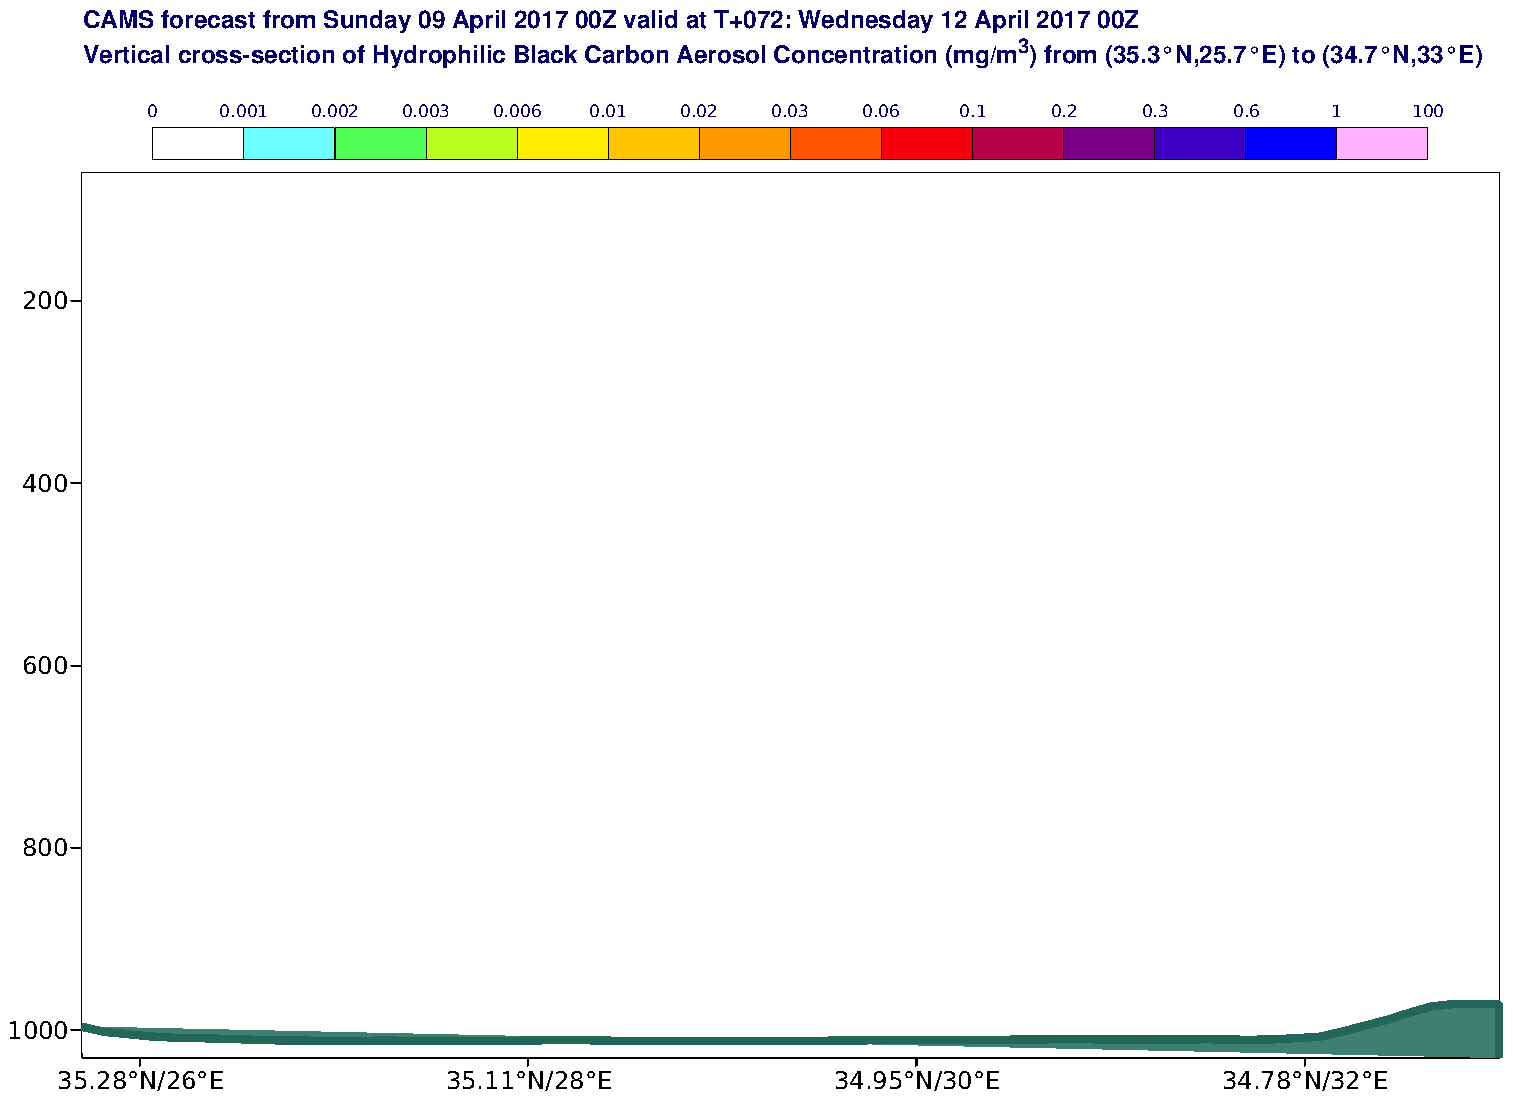 Vertical cross-section of Hydrophilic Black Carbon Aerosol Concentration (mg/m3) valid at T72 - 2017-04-12 00:00